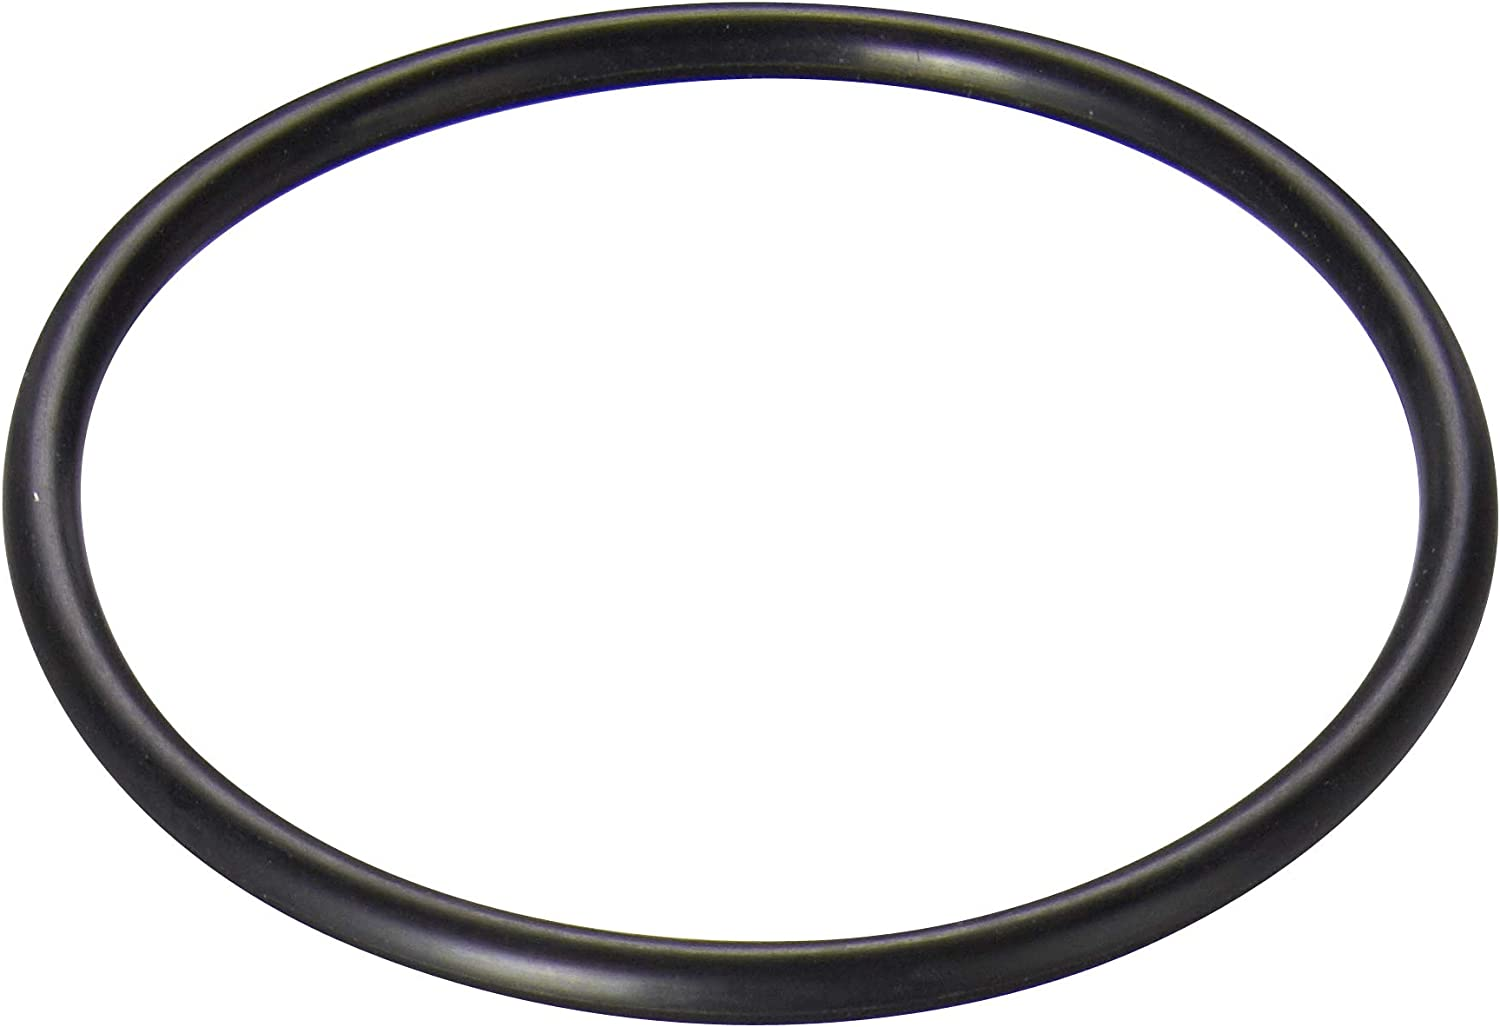 Rubber 1 Number of Band G/&T Engine Parts PJ5068 Butler Manufacturing Replacement Belt